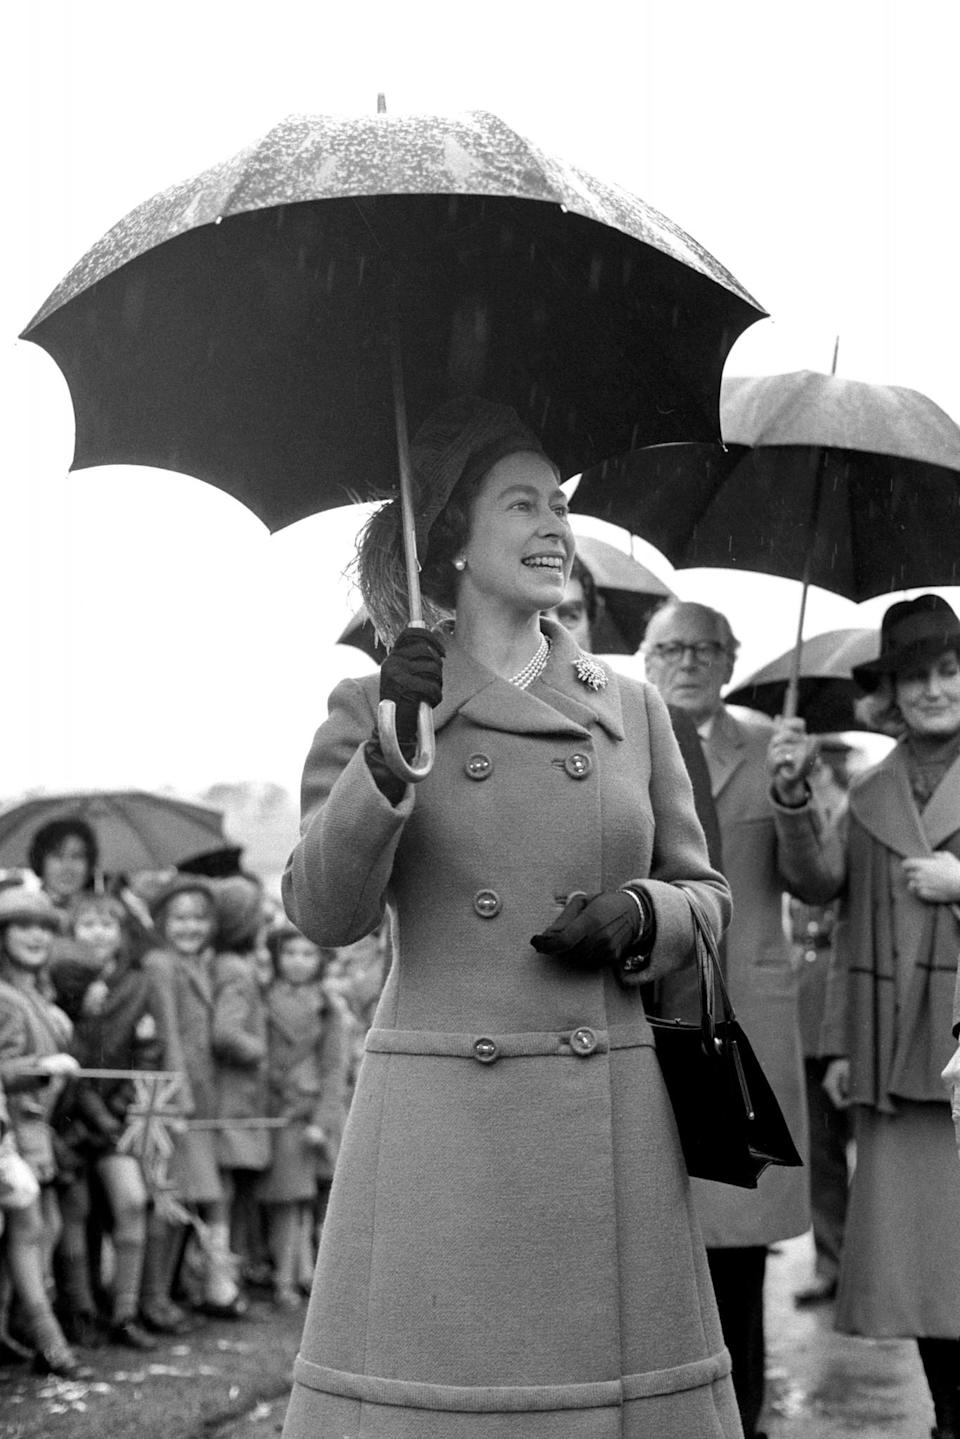 <p>On a rainy day The Queen visits the Royal Borough of Windsor and Maidenhead. (PA Archive) </p>